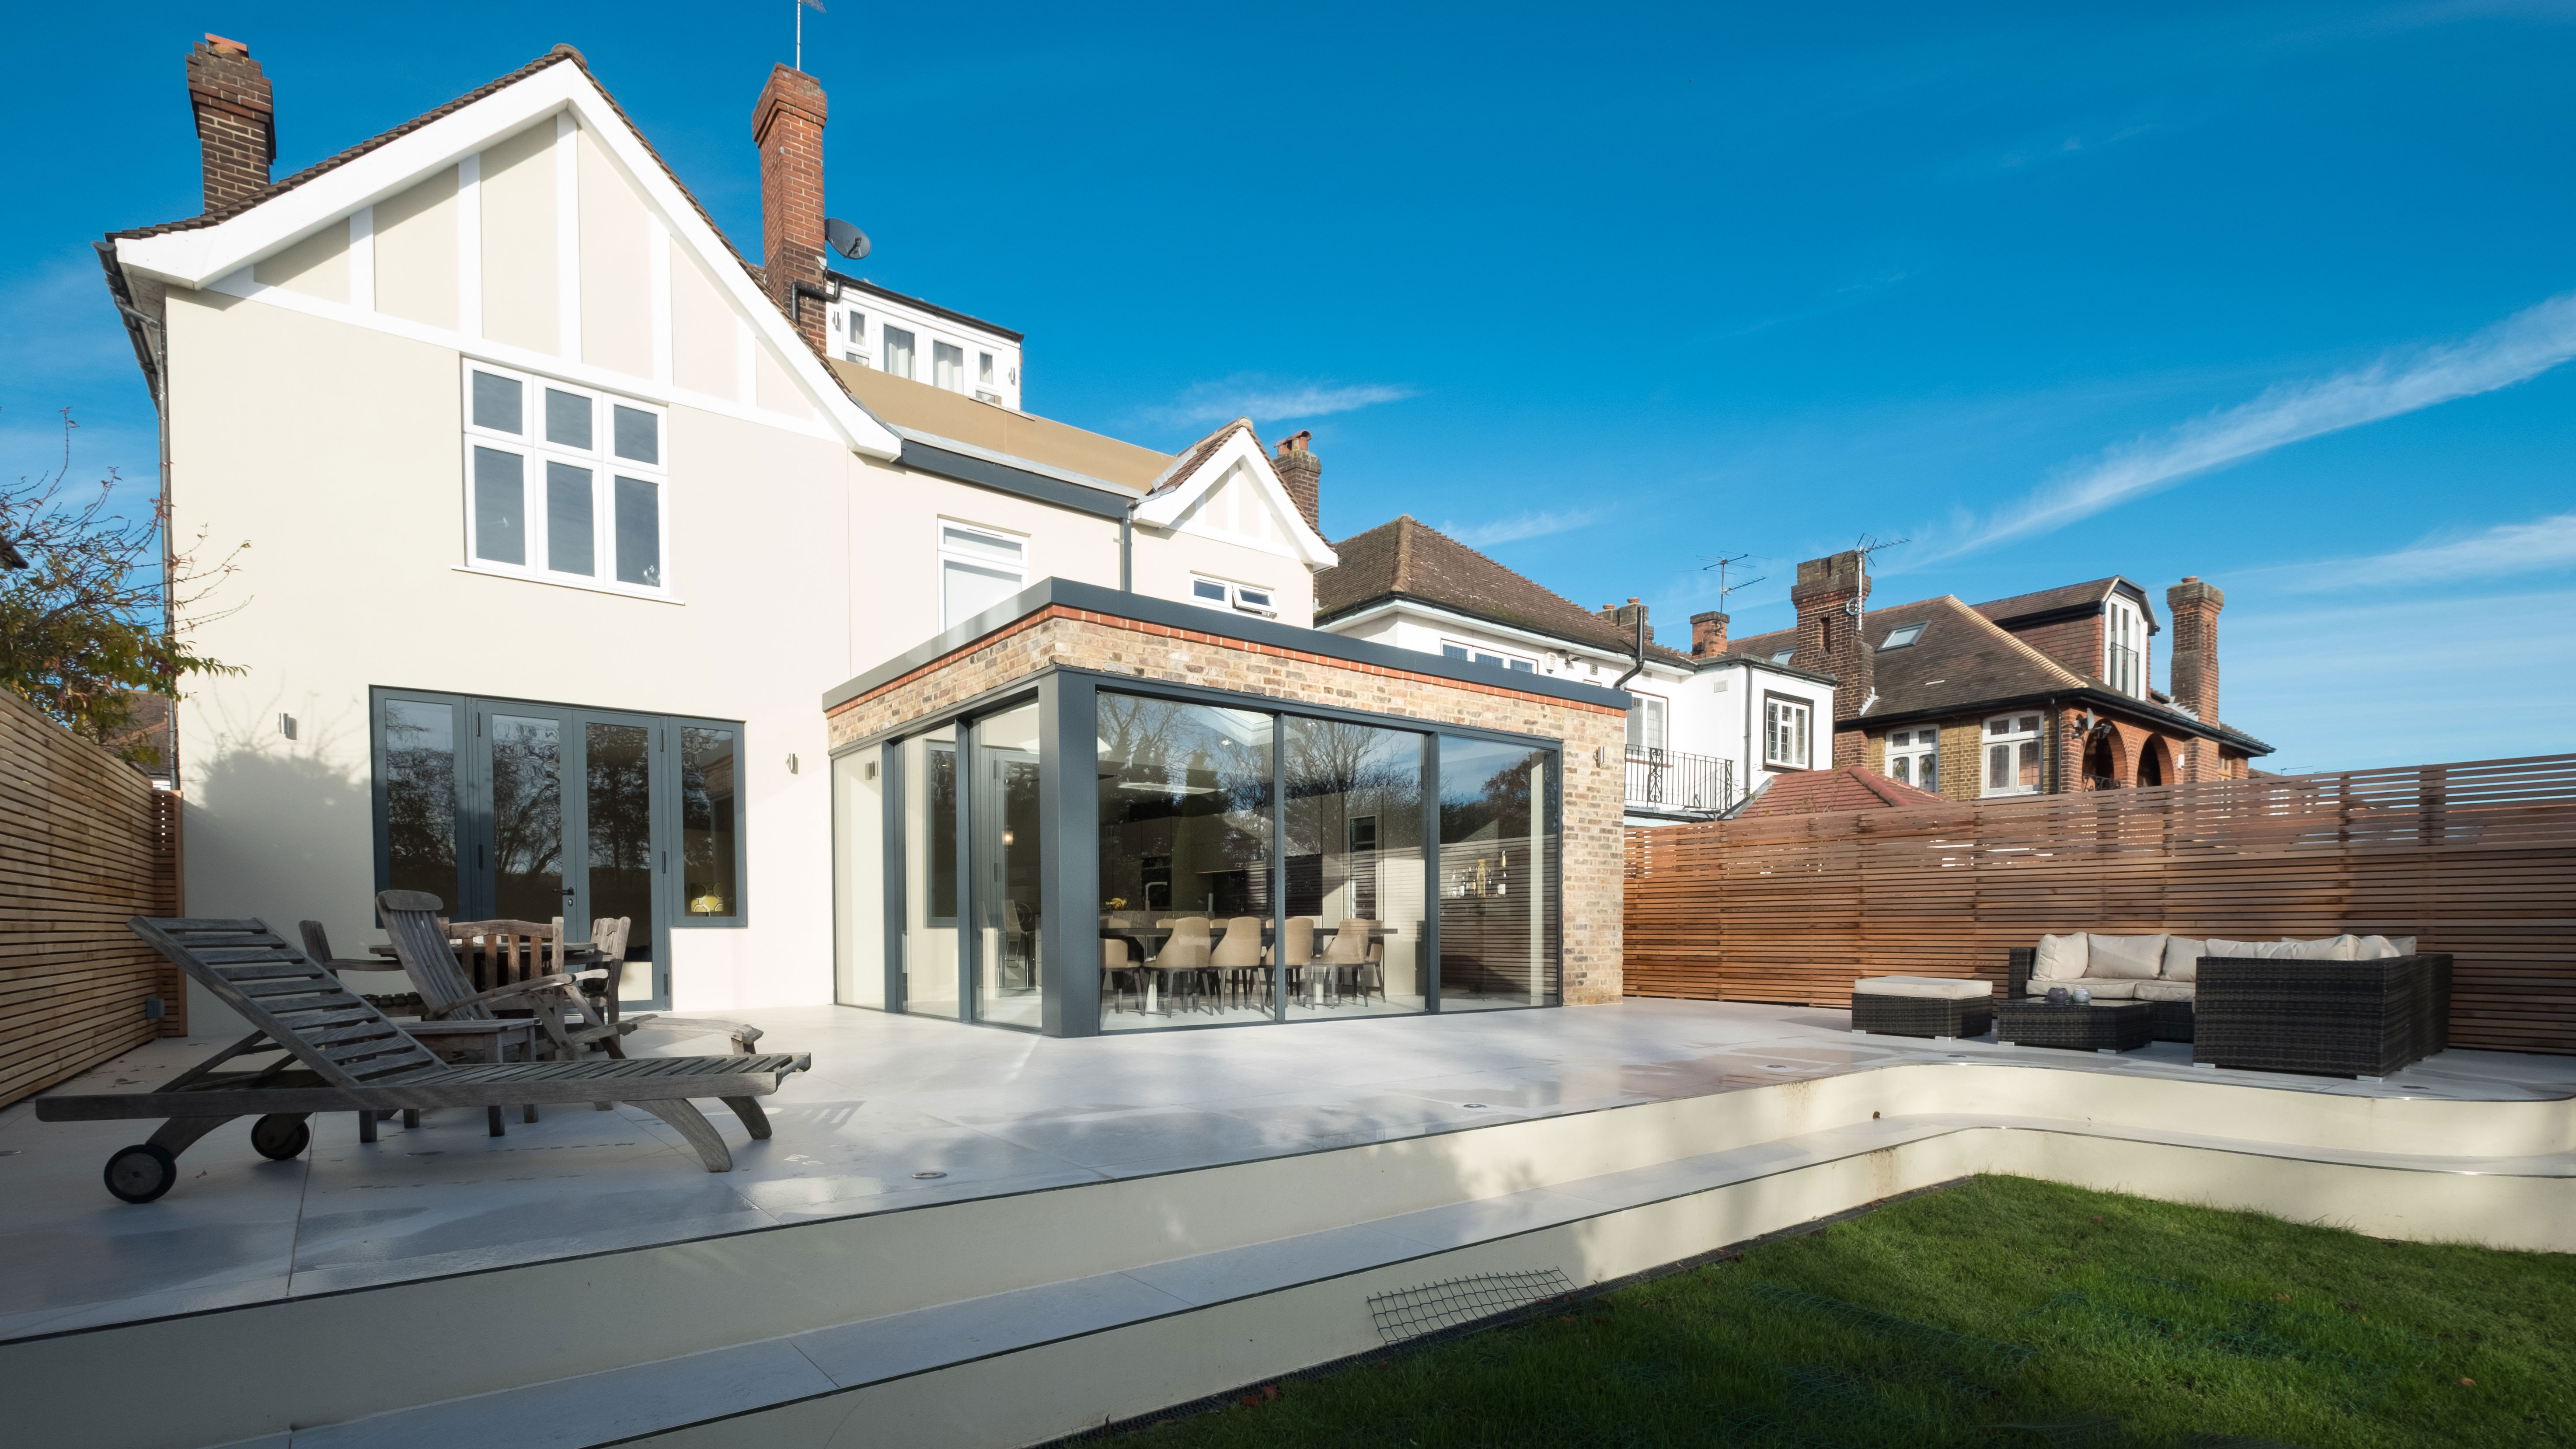 Q&A: Update or replace a dated extension? | Real Homes